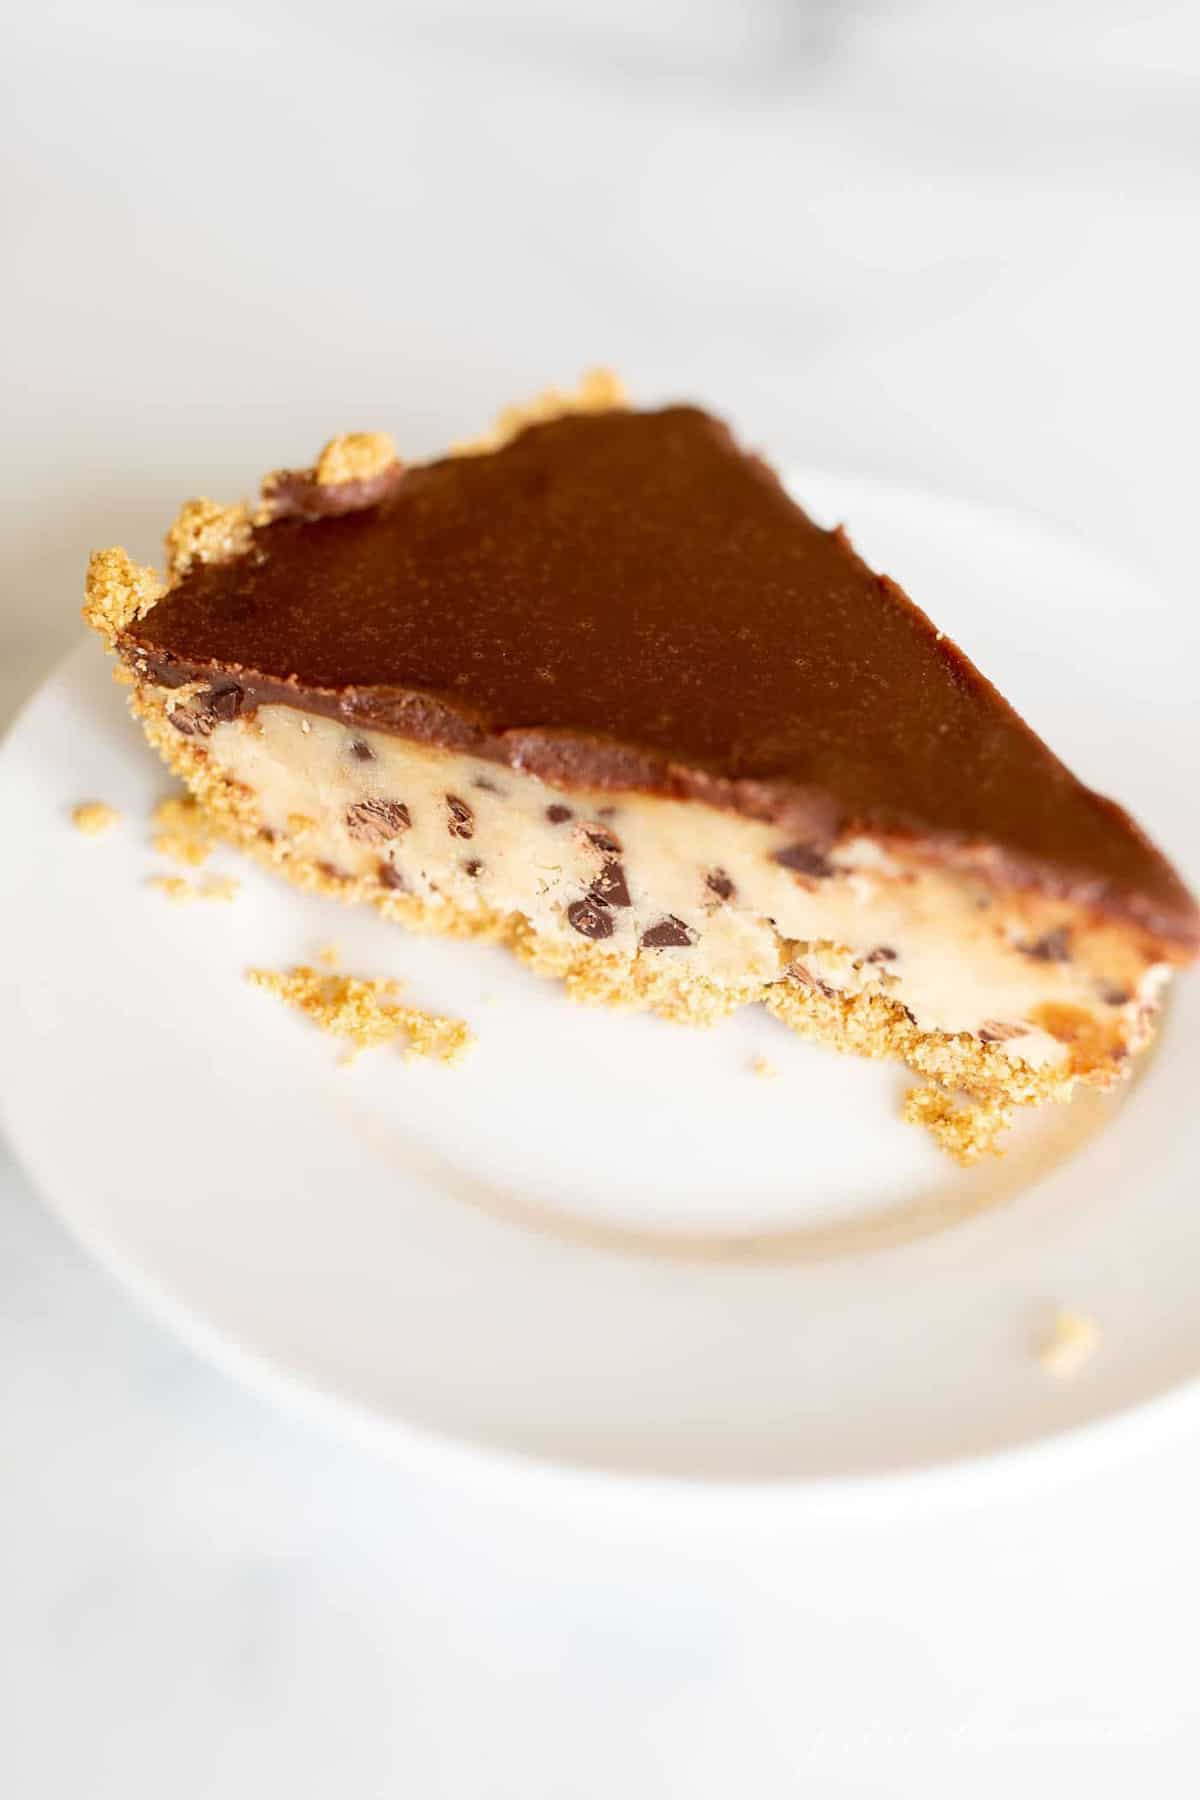 A slice of no bake cookie dough pie on a white plate.